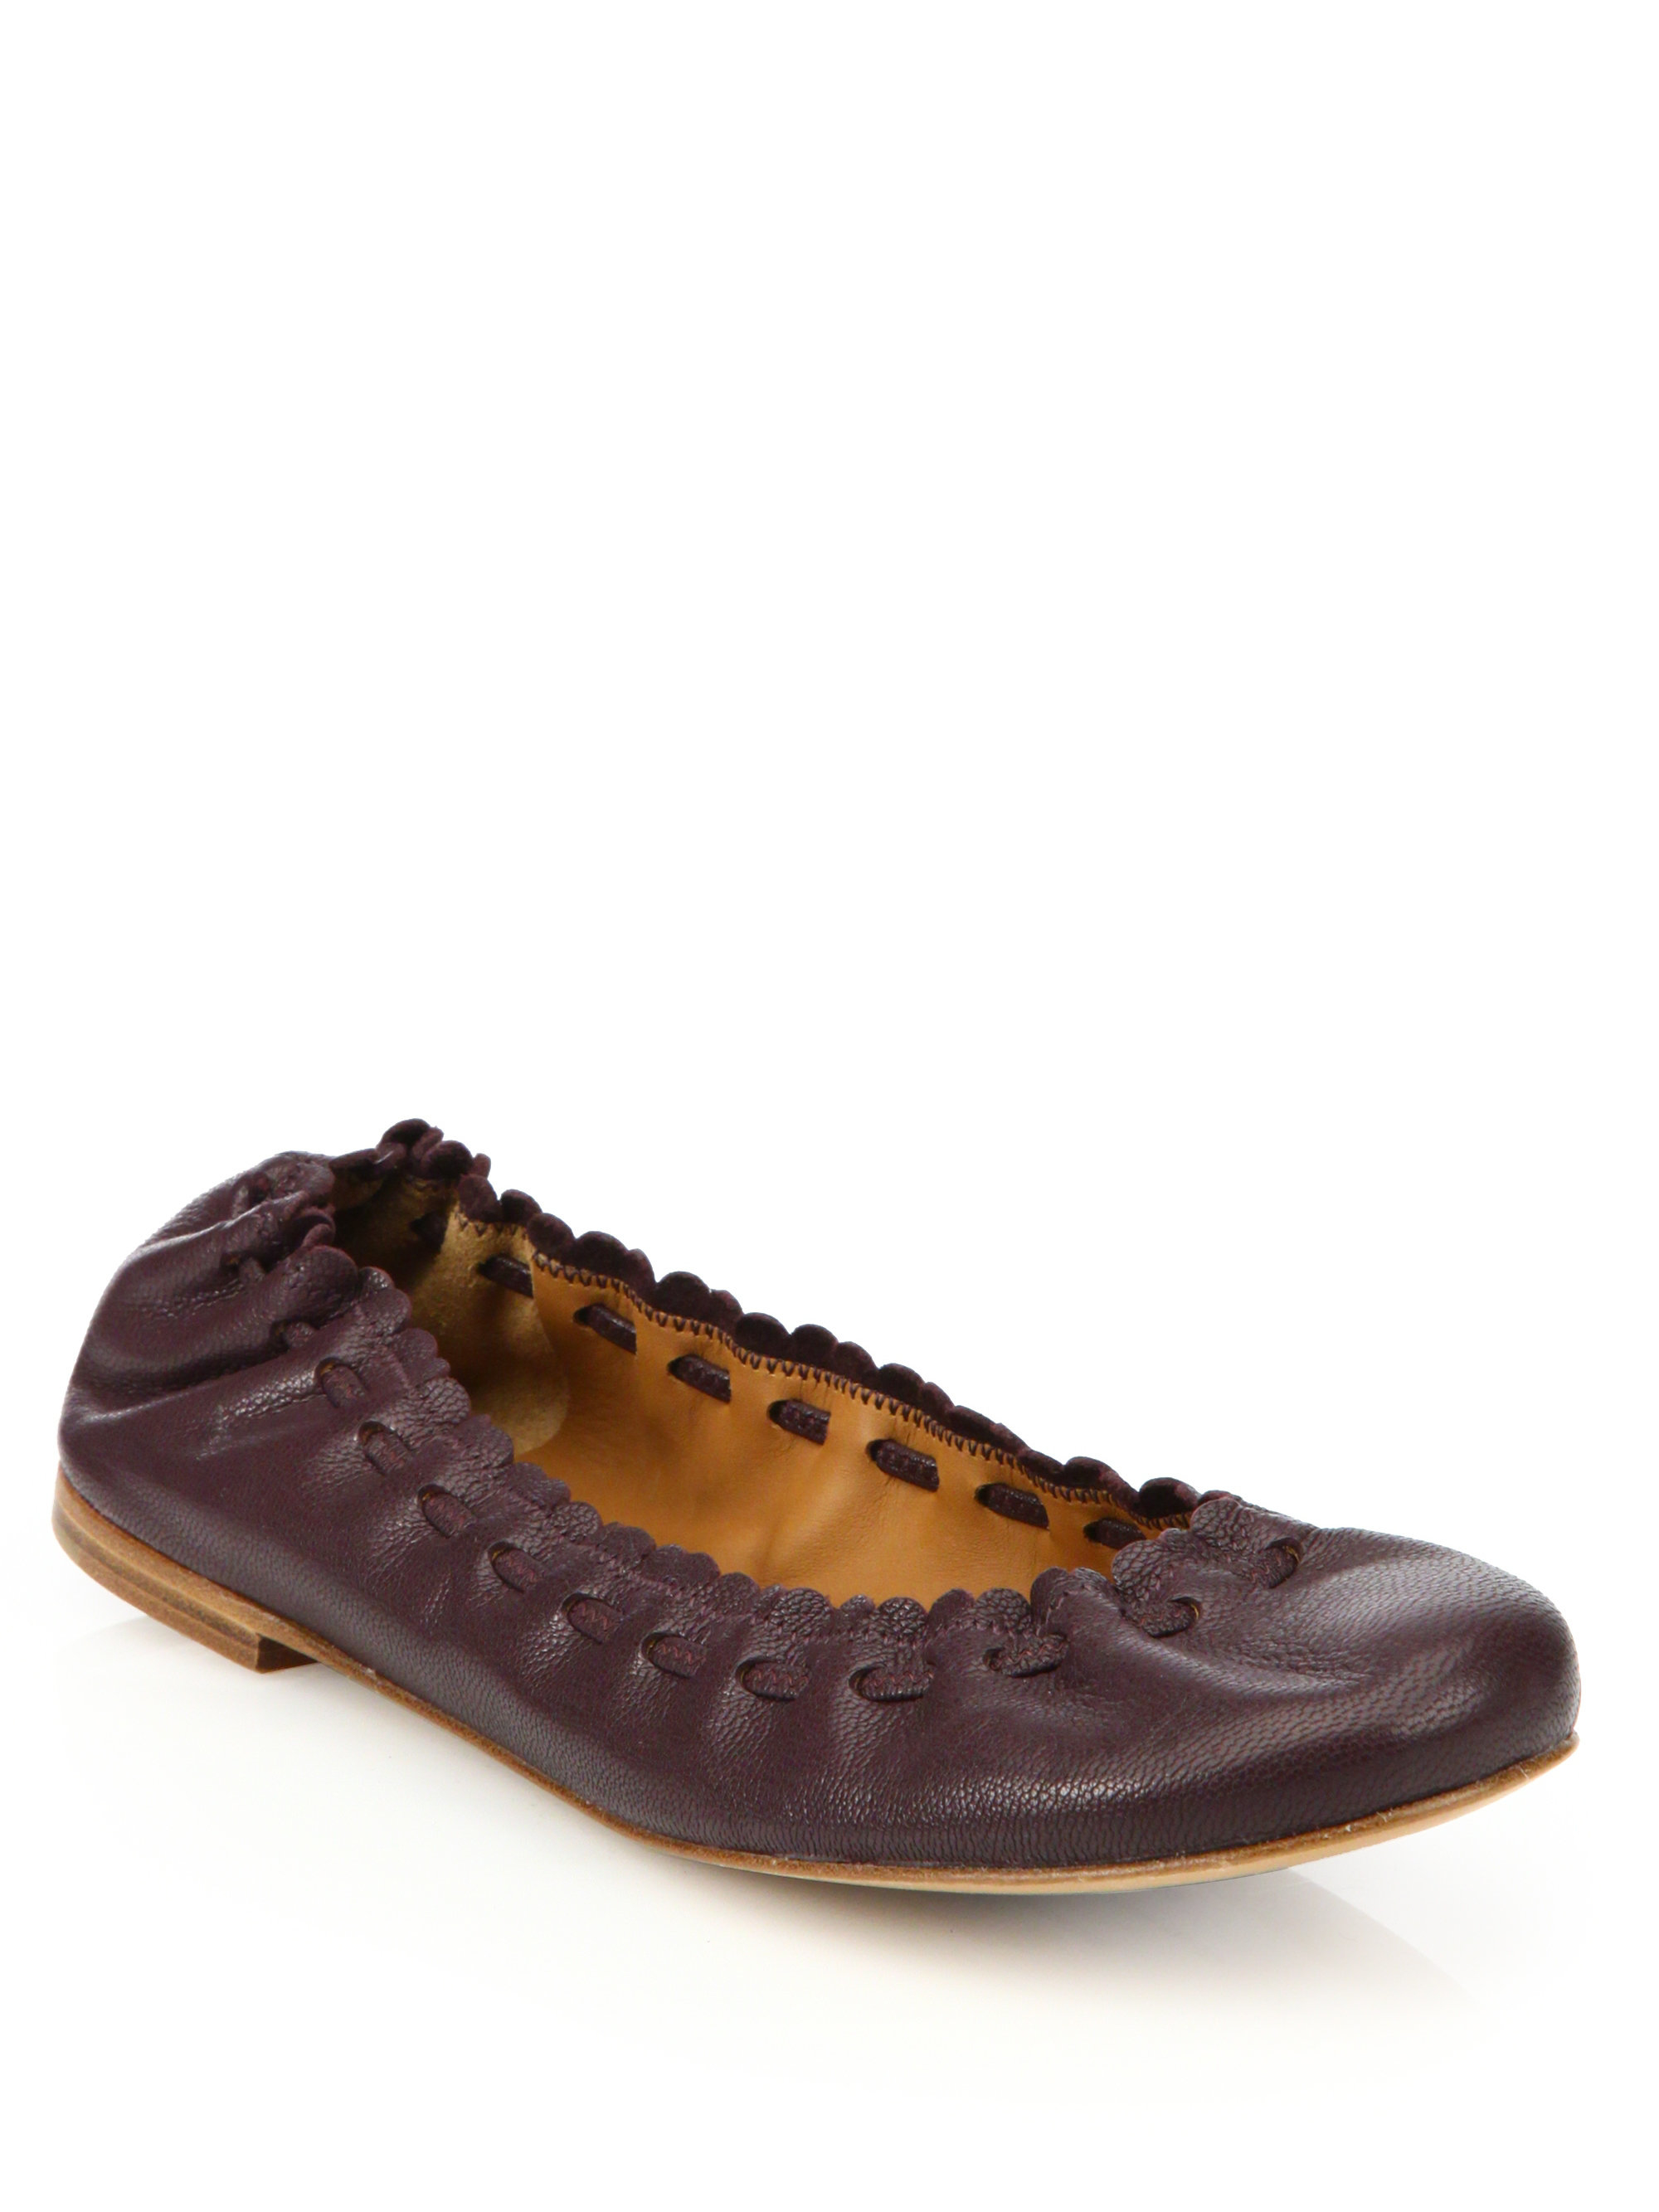 see by chlo jane leather ballet flats in brown aubergine. Black Bedroom Furniture Sets. Home Design Ideas